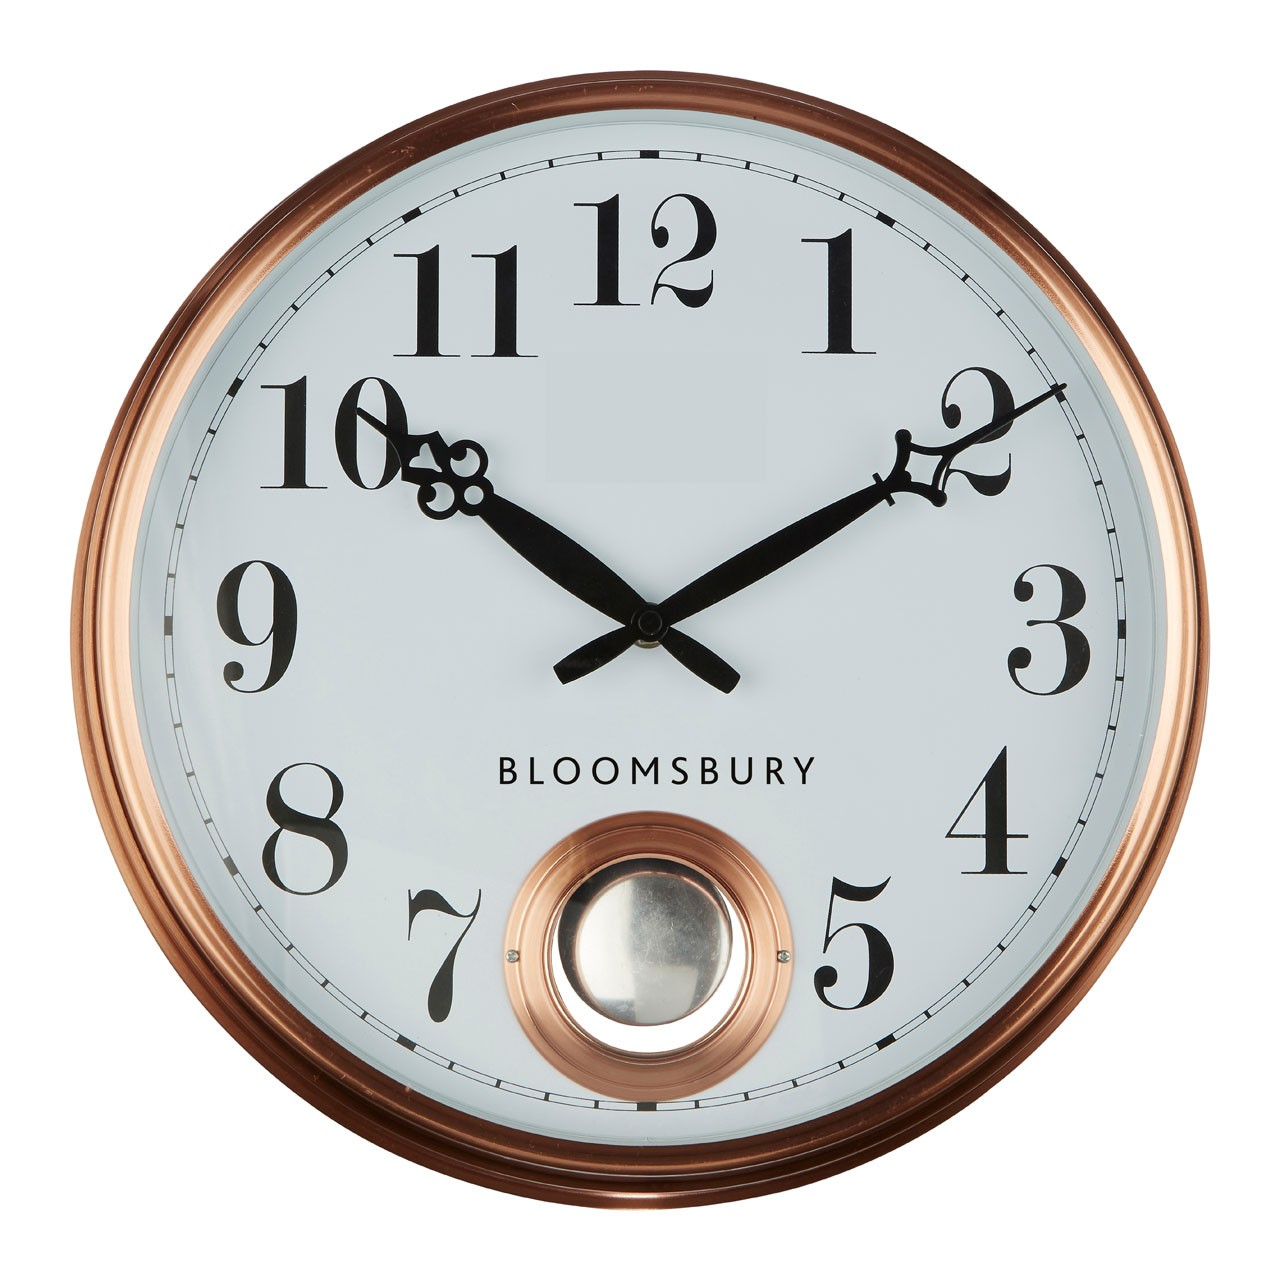 Prime Furnishing Bloomsbury Pendulum Wall Clock, Metal - Copper